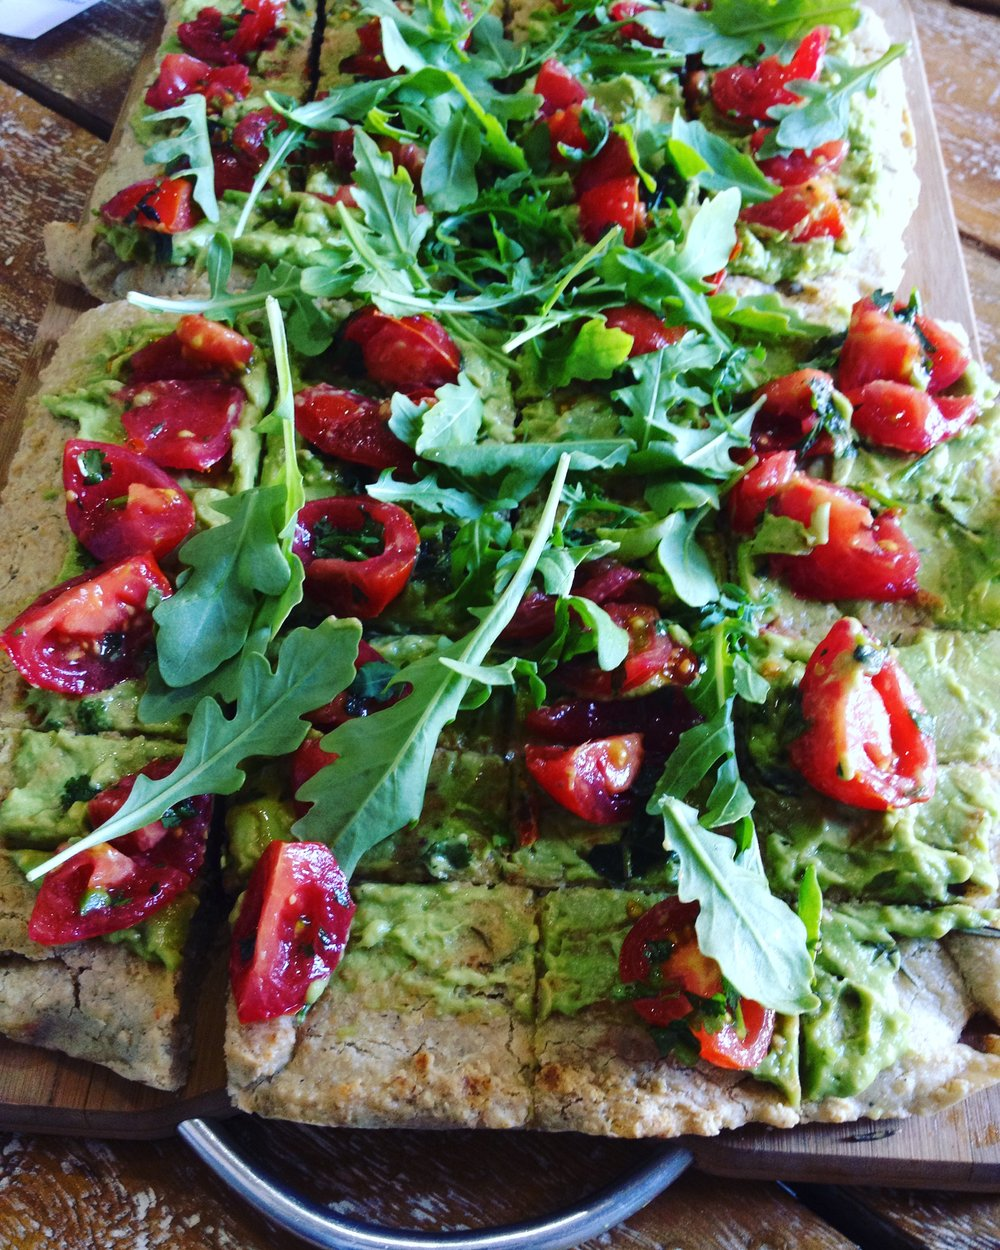 Avo smash, with rocket and tomatoes onfocaccia by GH Produce